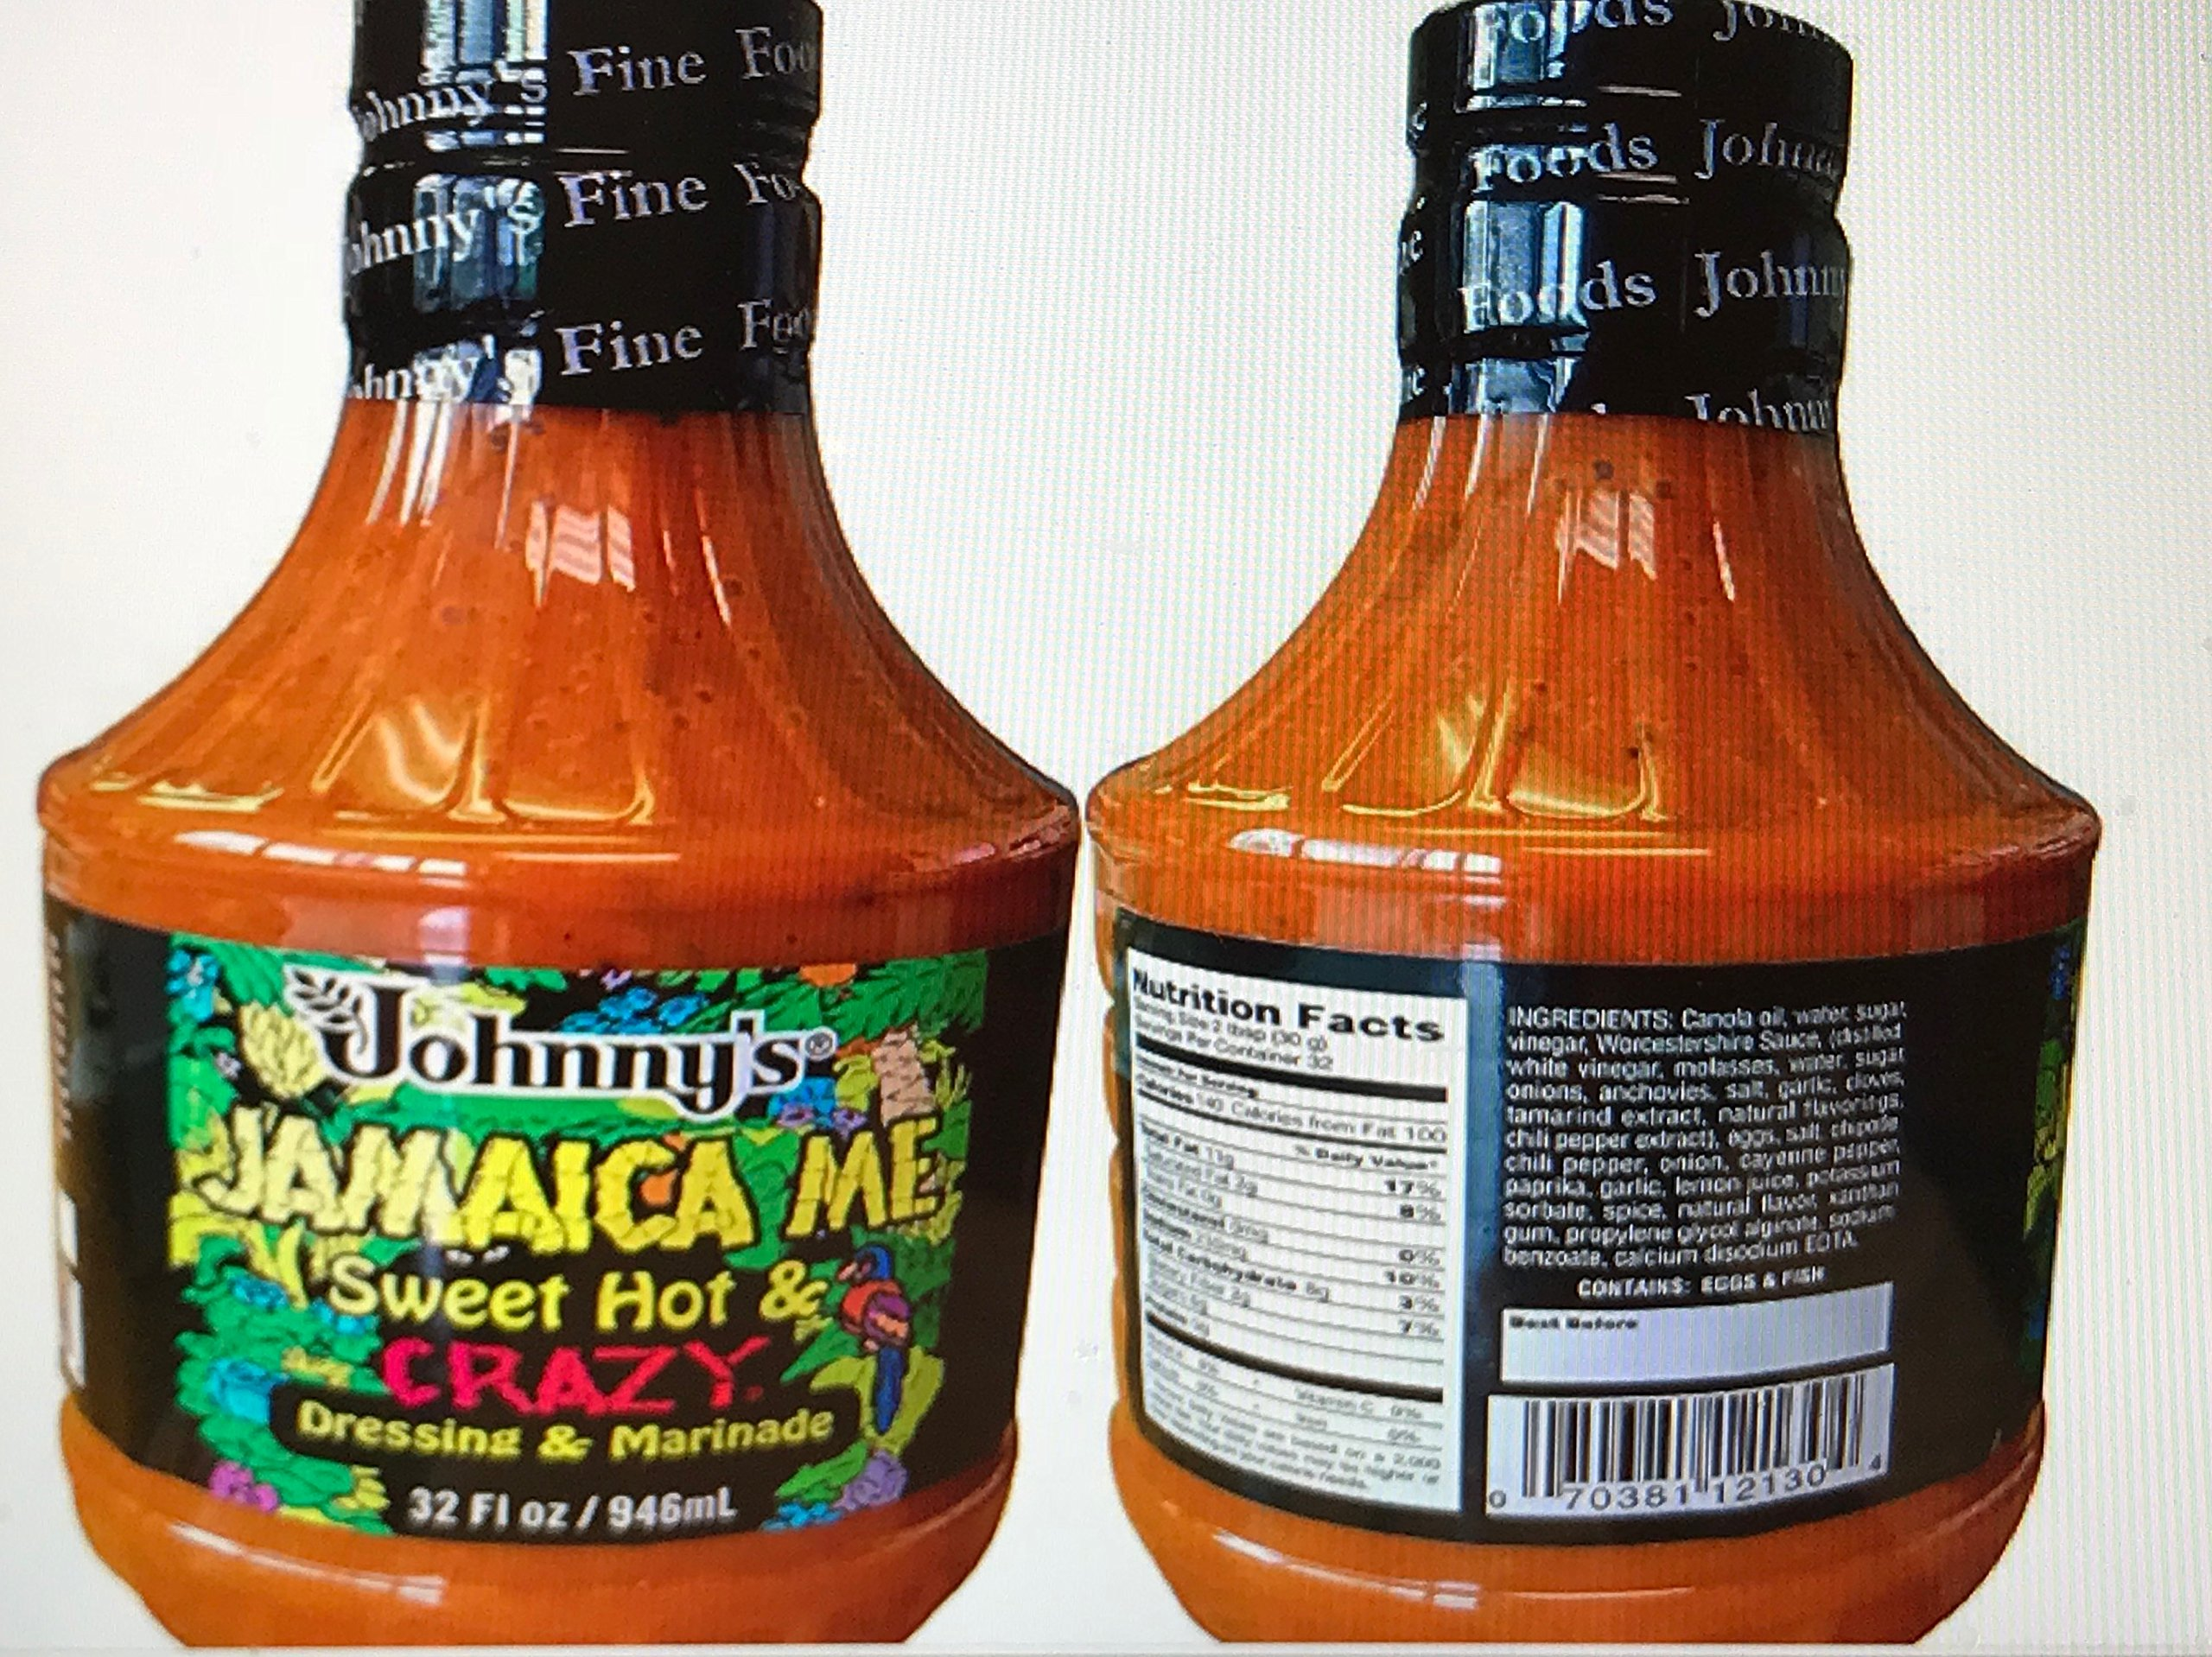 Johnny's Jamaica Me Sweet, Hot and Crazy Marinade Dressing (2 pack)